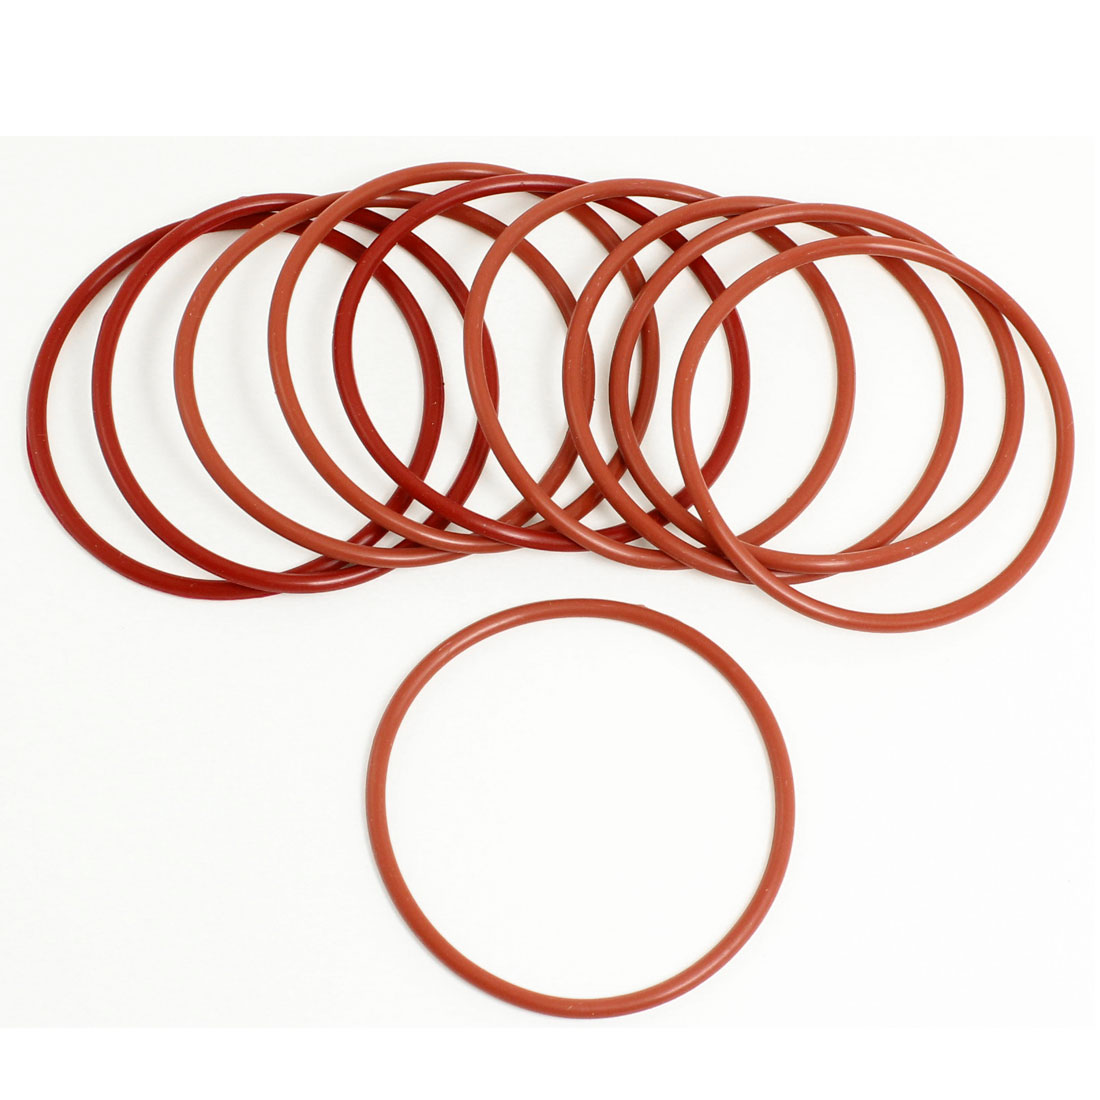 10 Pcs Soft Rubber O Rings Seal Washers Replacement Red 65mm x 3mm